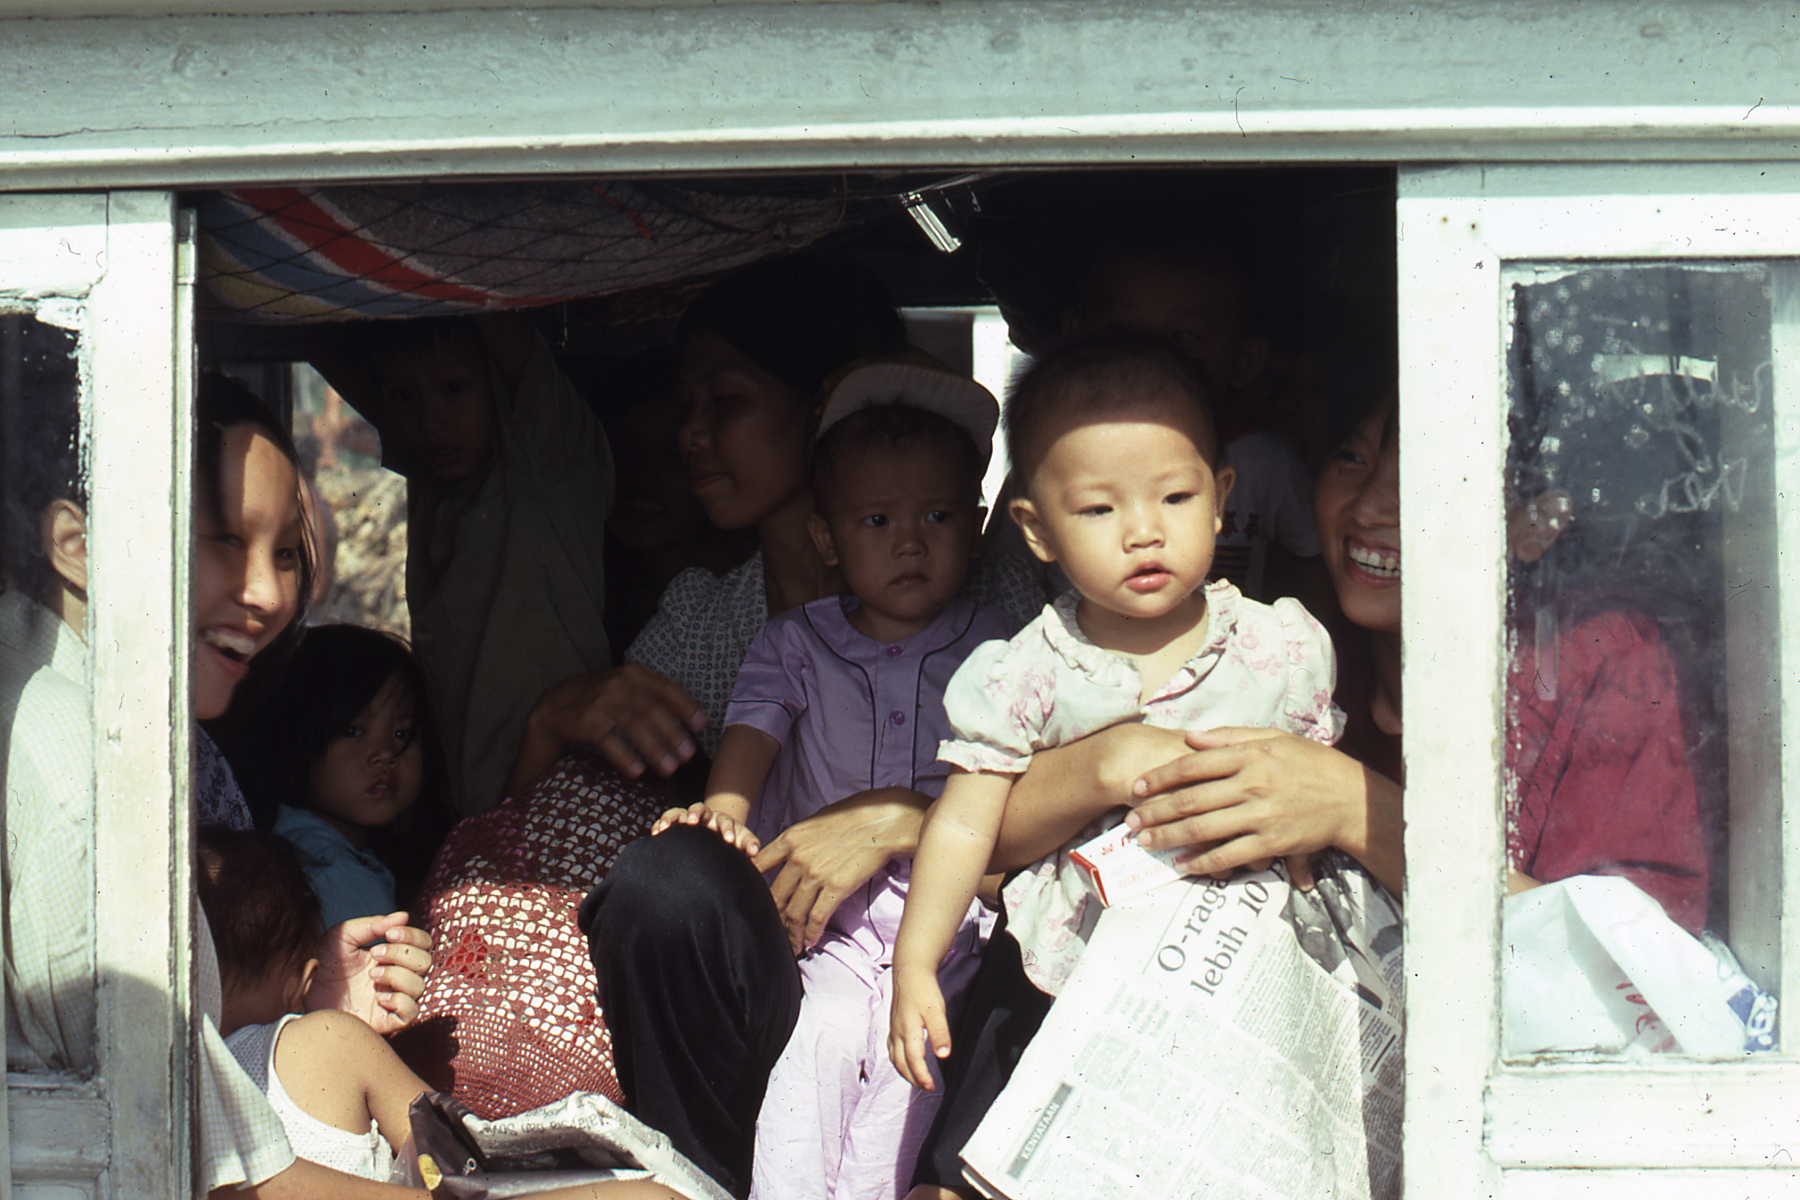 Baby and family leaving Pulau Bidong camp by boat, October 1979